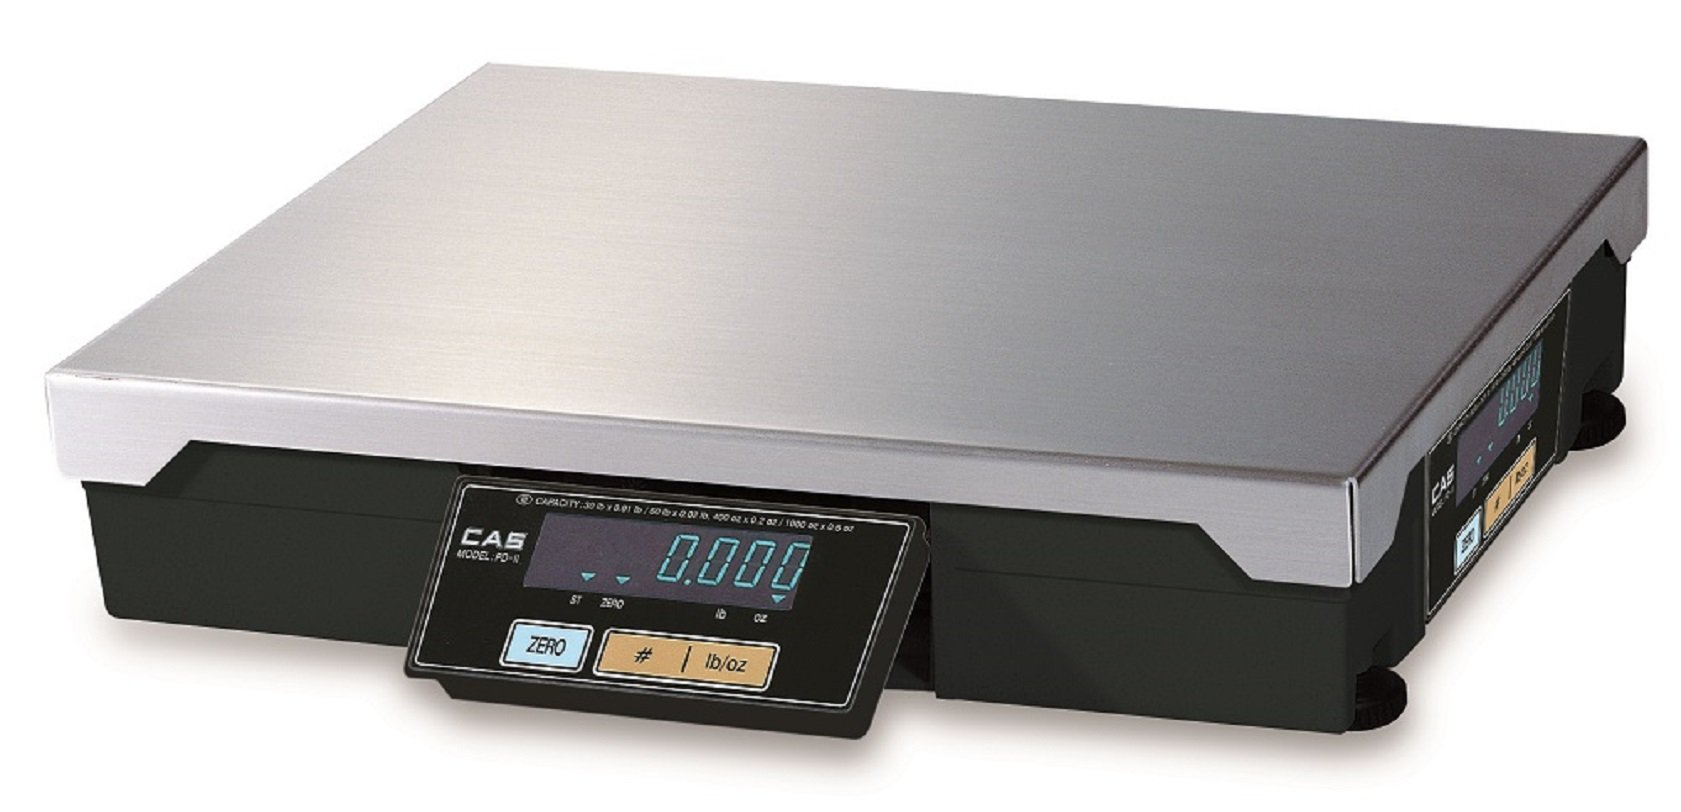 CAS PD-2 POS/Checkout Scale, LB & OZ Switchable, 30lb Capacity, 0.01lbs Resolution Single Range, Legal-for-Trade